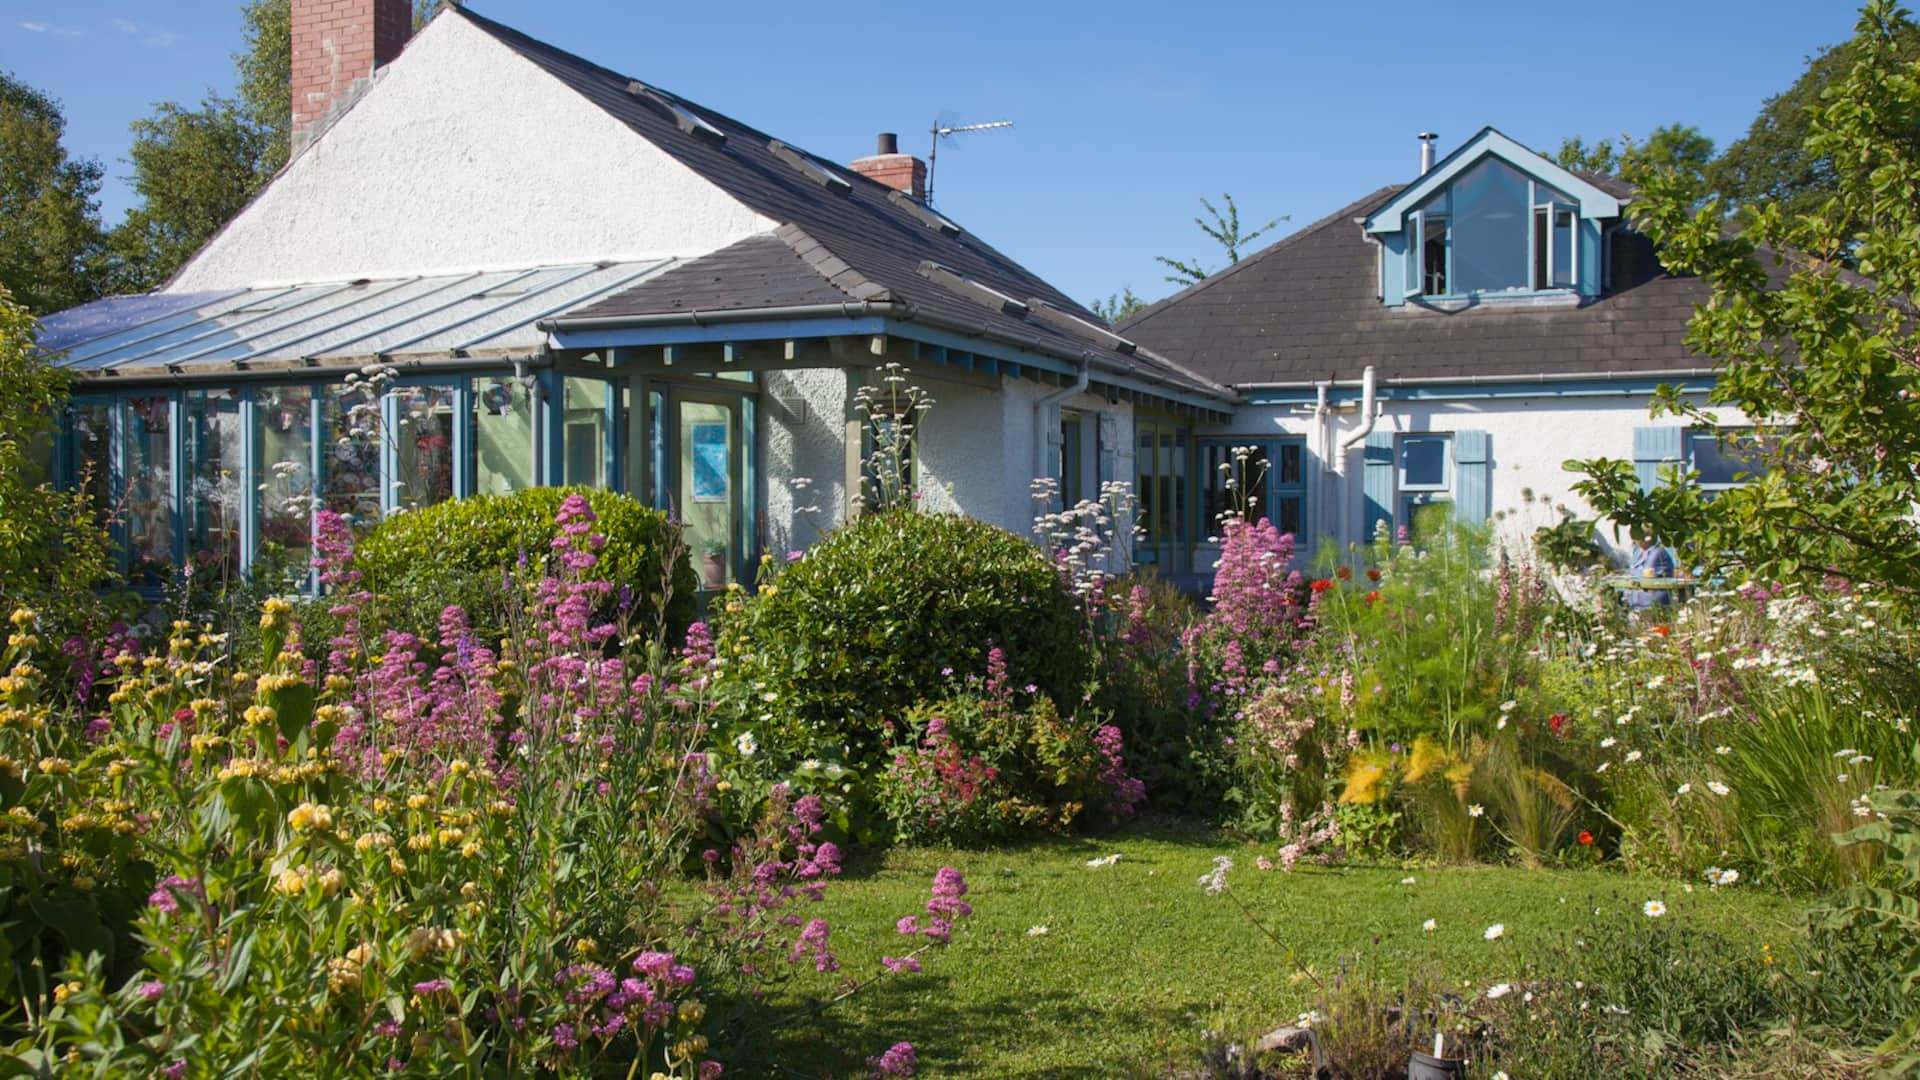 Artsy cottage for garden lovers (Co. Down) - a love shack with a beautiful garden in the North